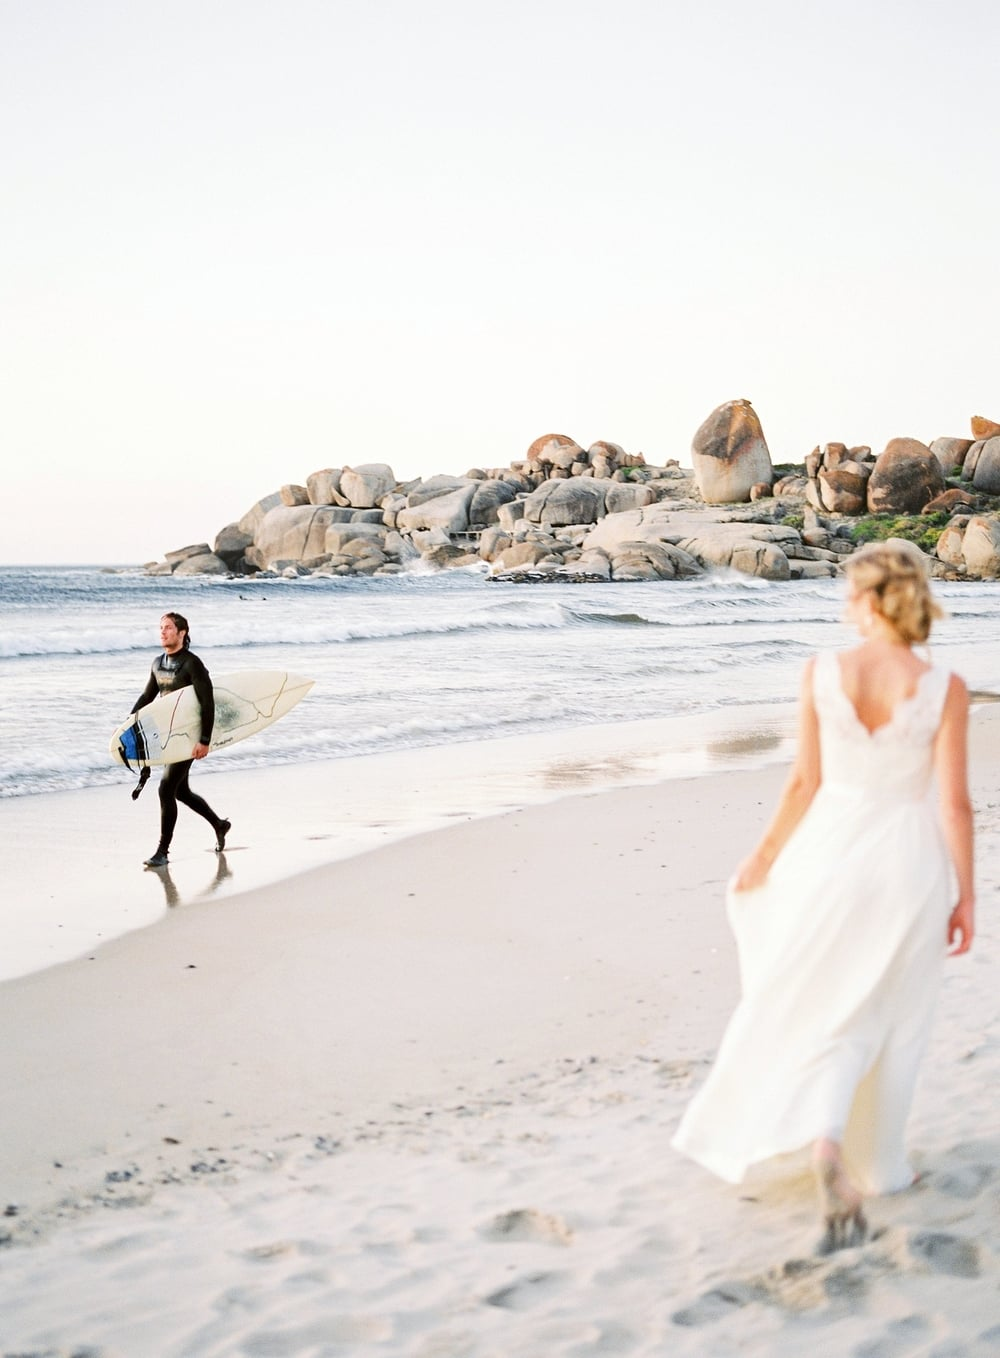 Amanda-Drost-photography-travel-wanderlust-South-Africa-cape-town-elopement-nederland-trouwen-bruiloft_0025.jpg